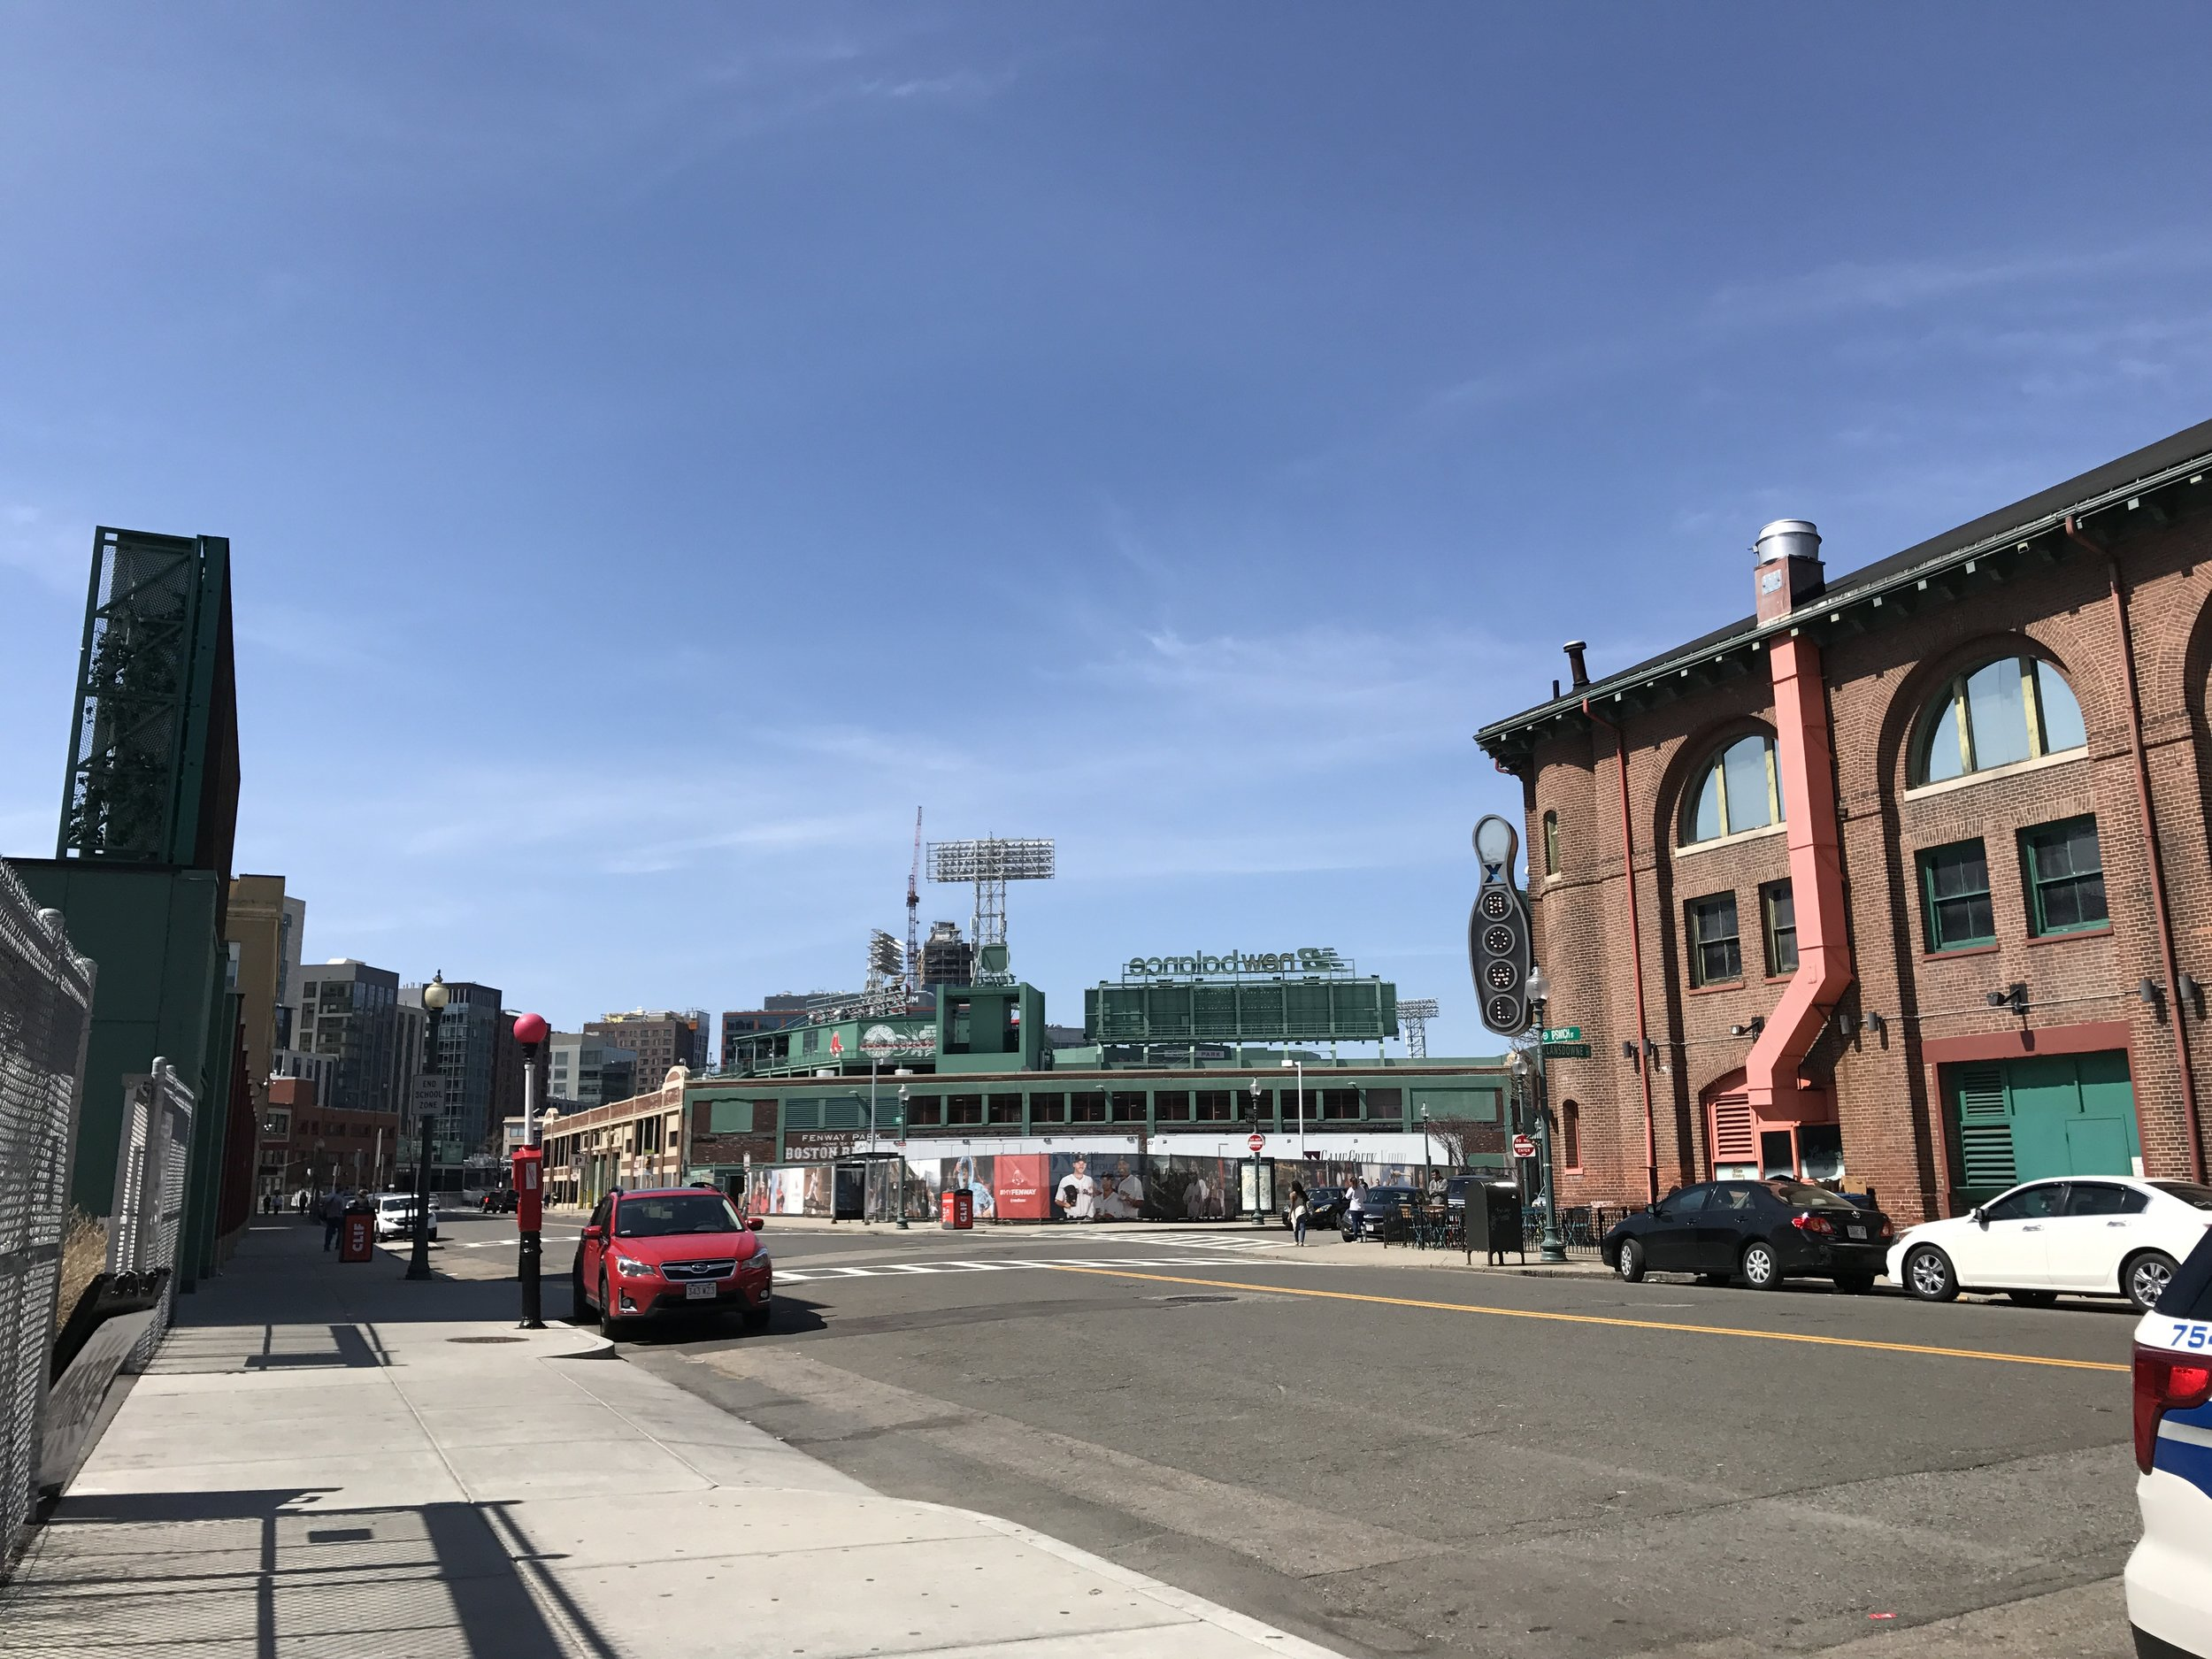 Fenway Park in placed right in the city of Boston. Everything around the staduim is almost simialr to the history and how old the stadium is.